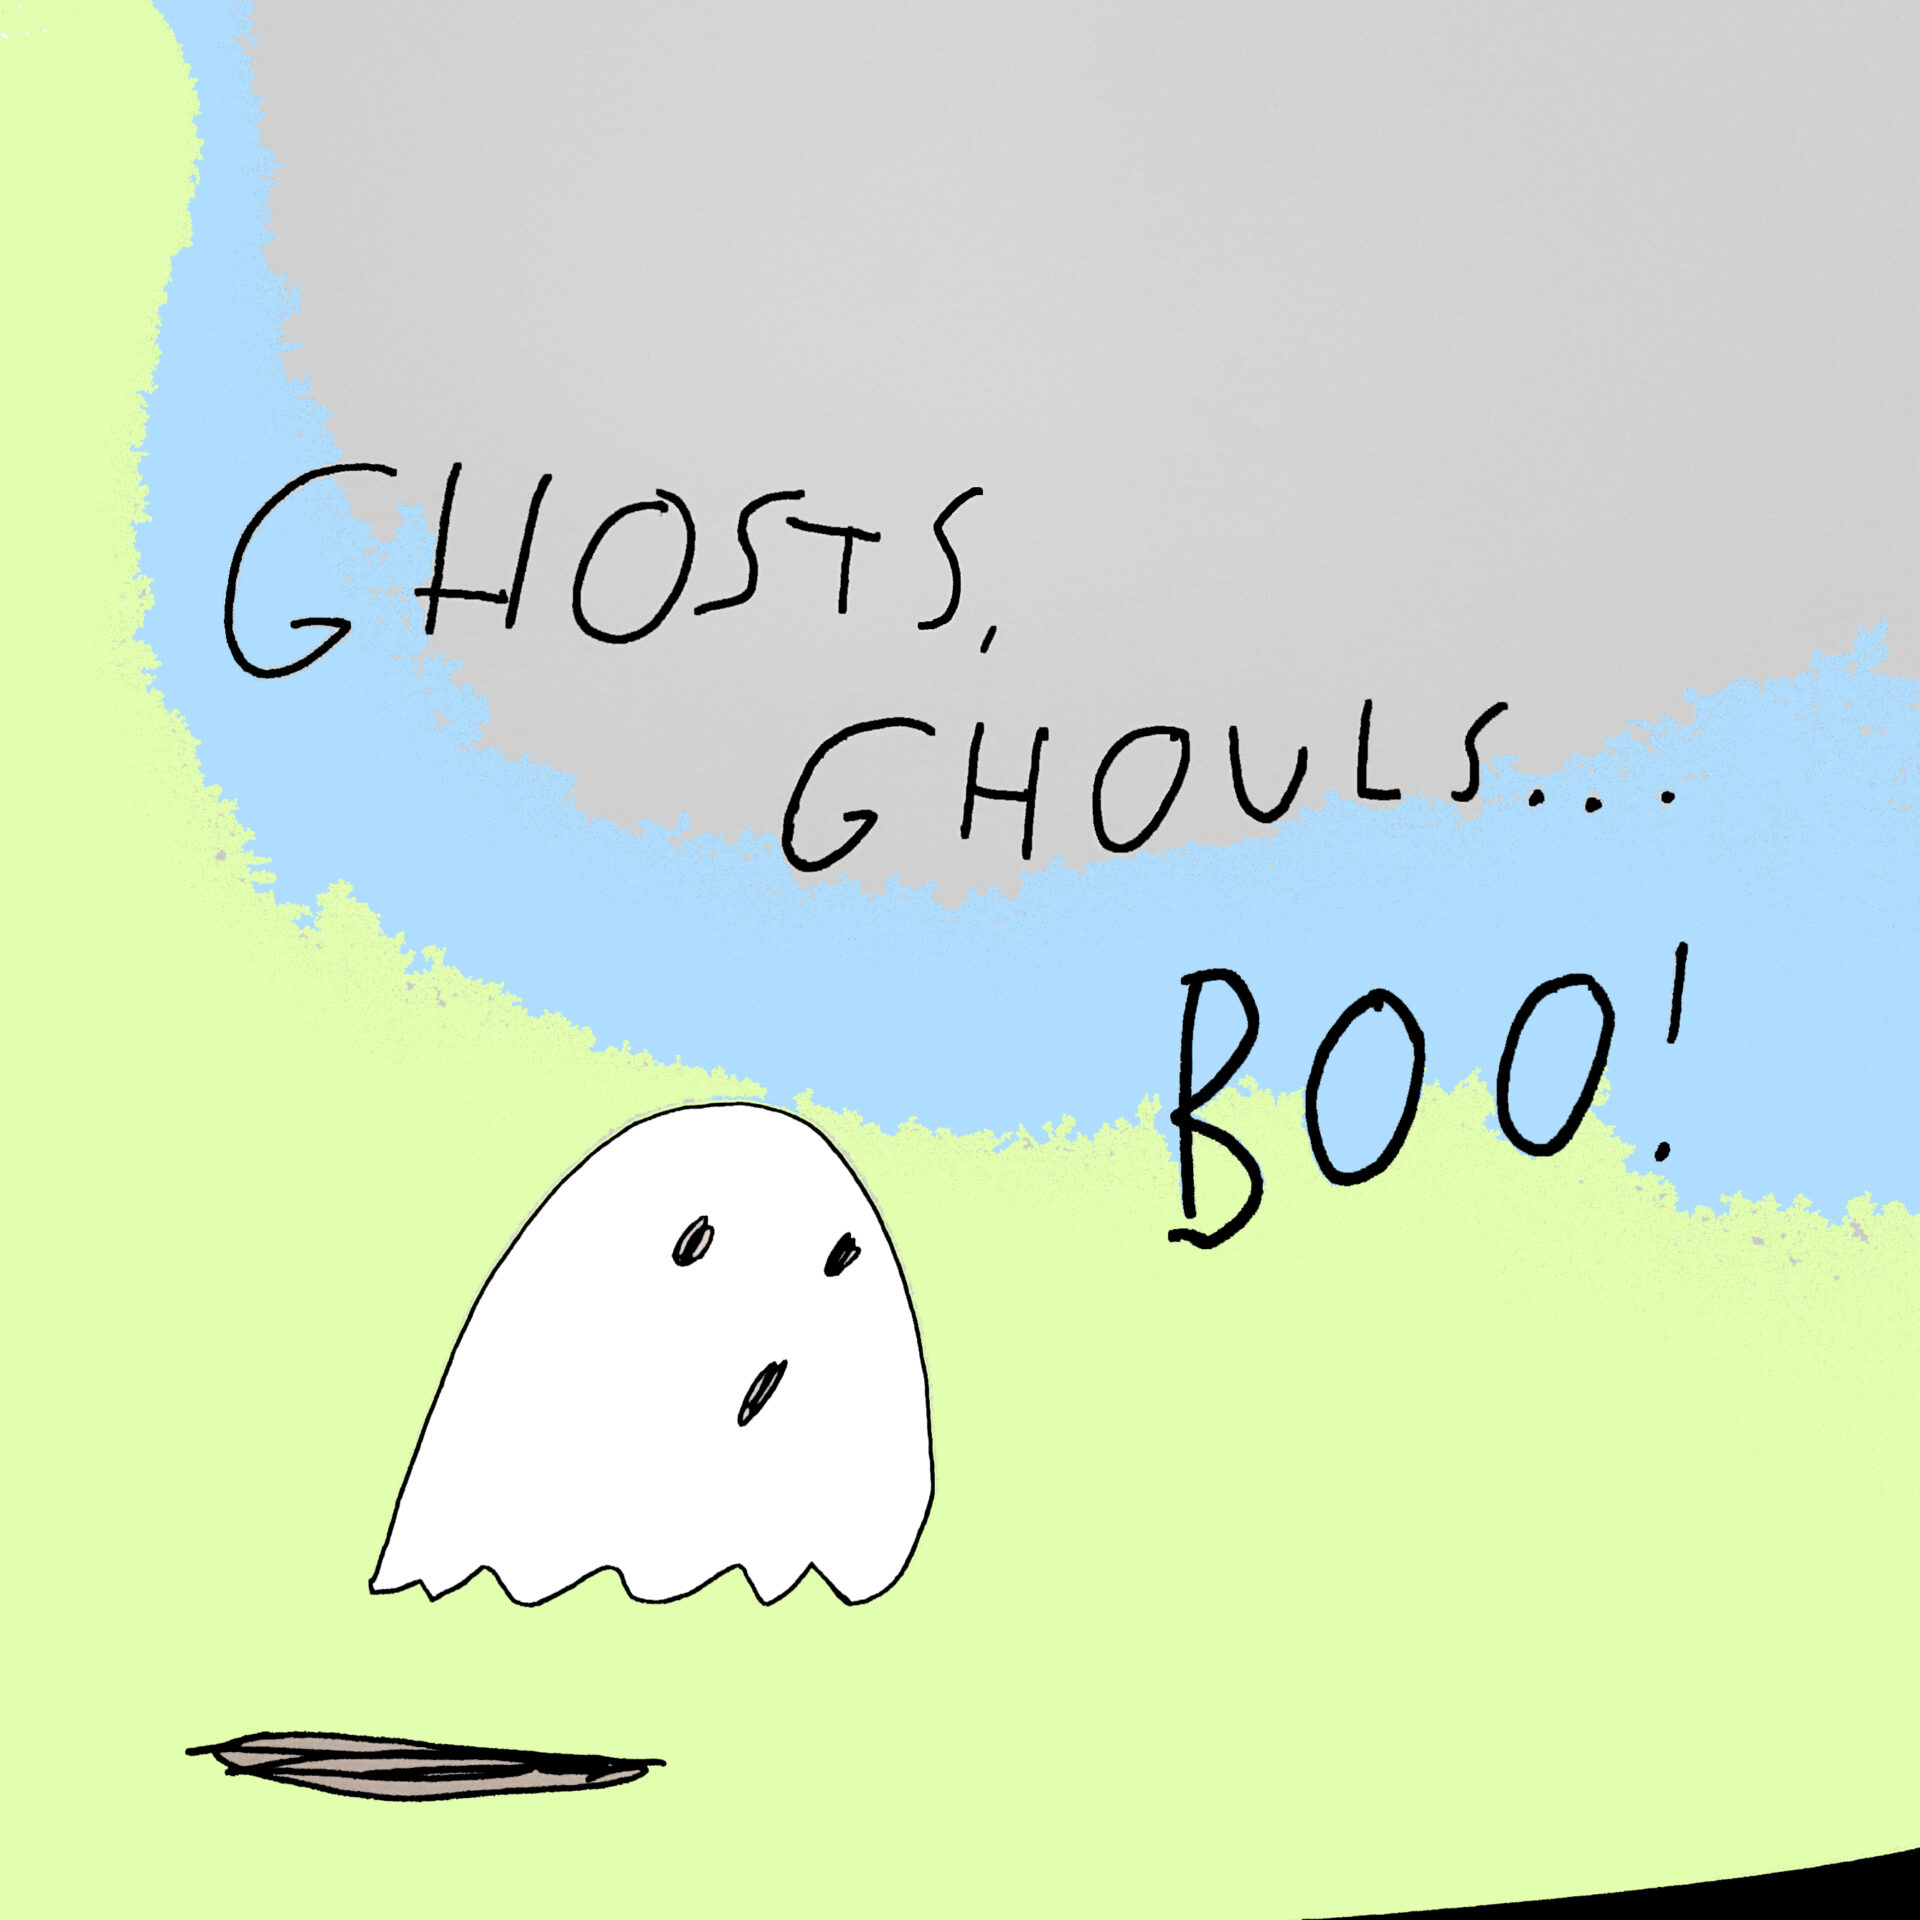 Ghosts, Ghouls... Boo